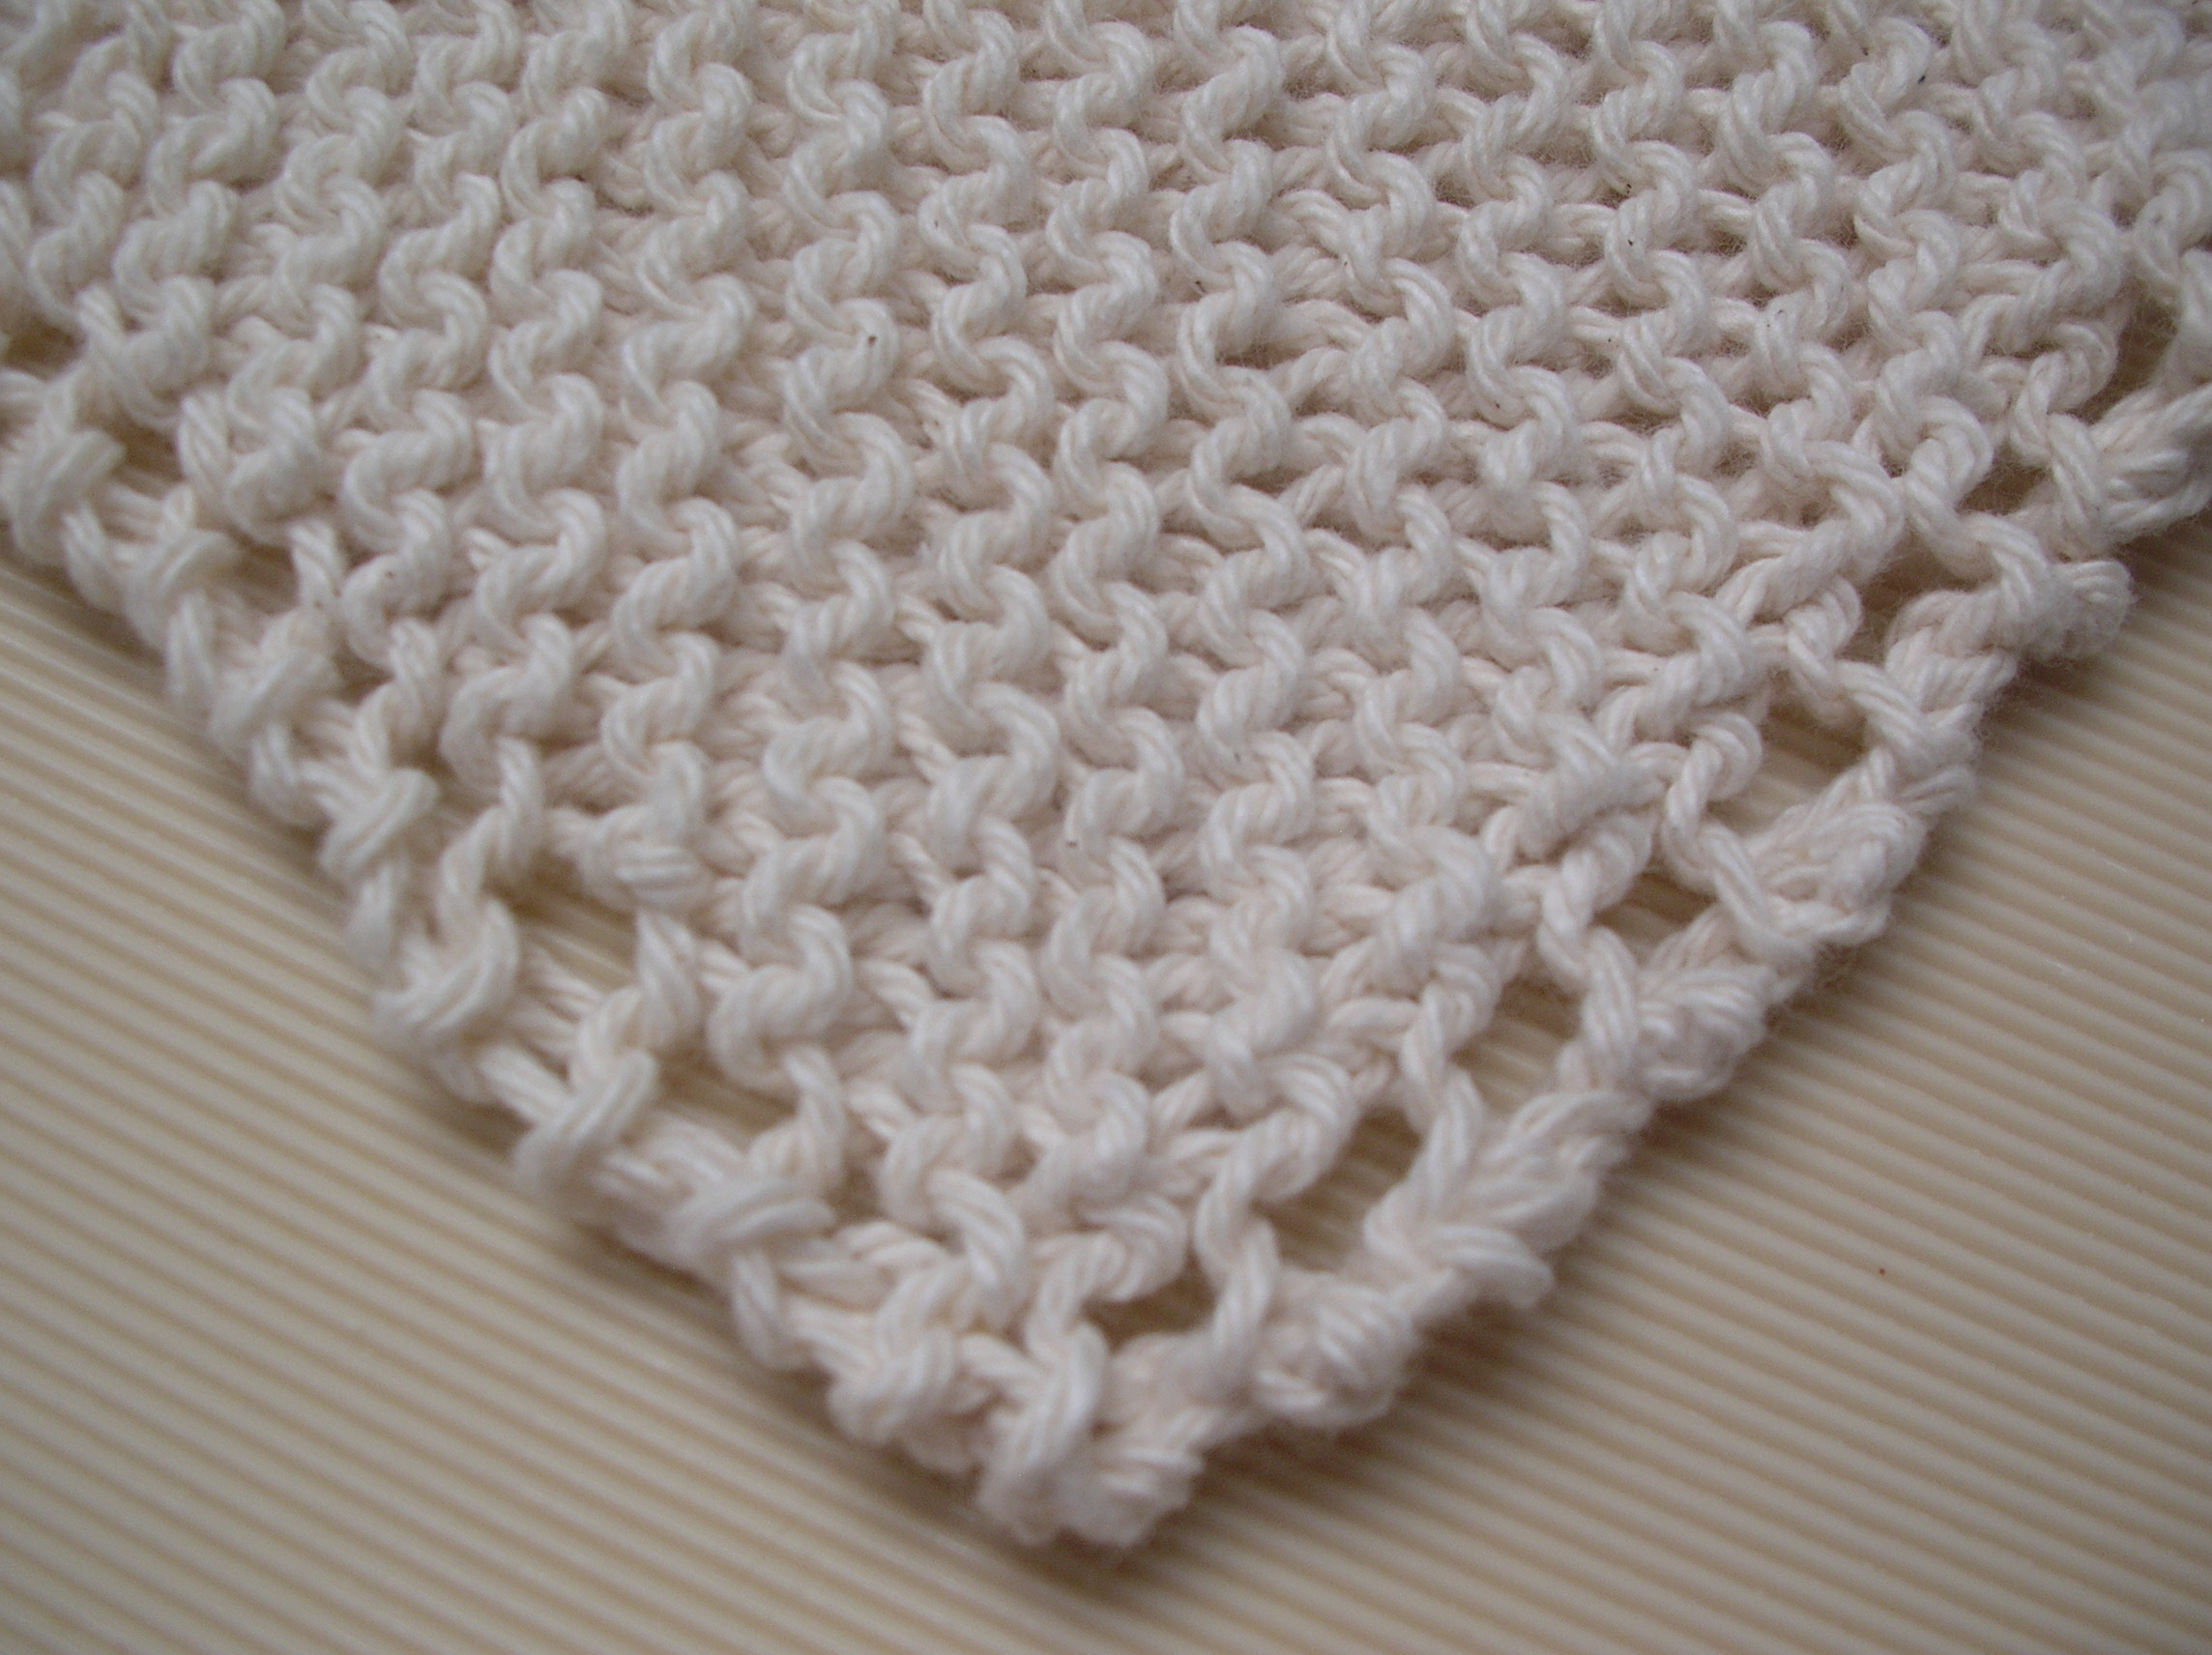 Free Knitted Cotton Dishcloth Patterns 34 New Crochet Dishcloth Patterns For Free Patterns Hub